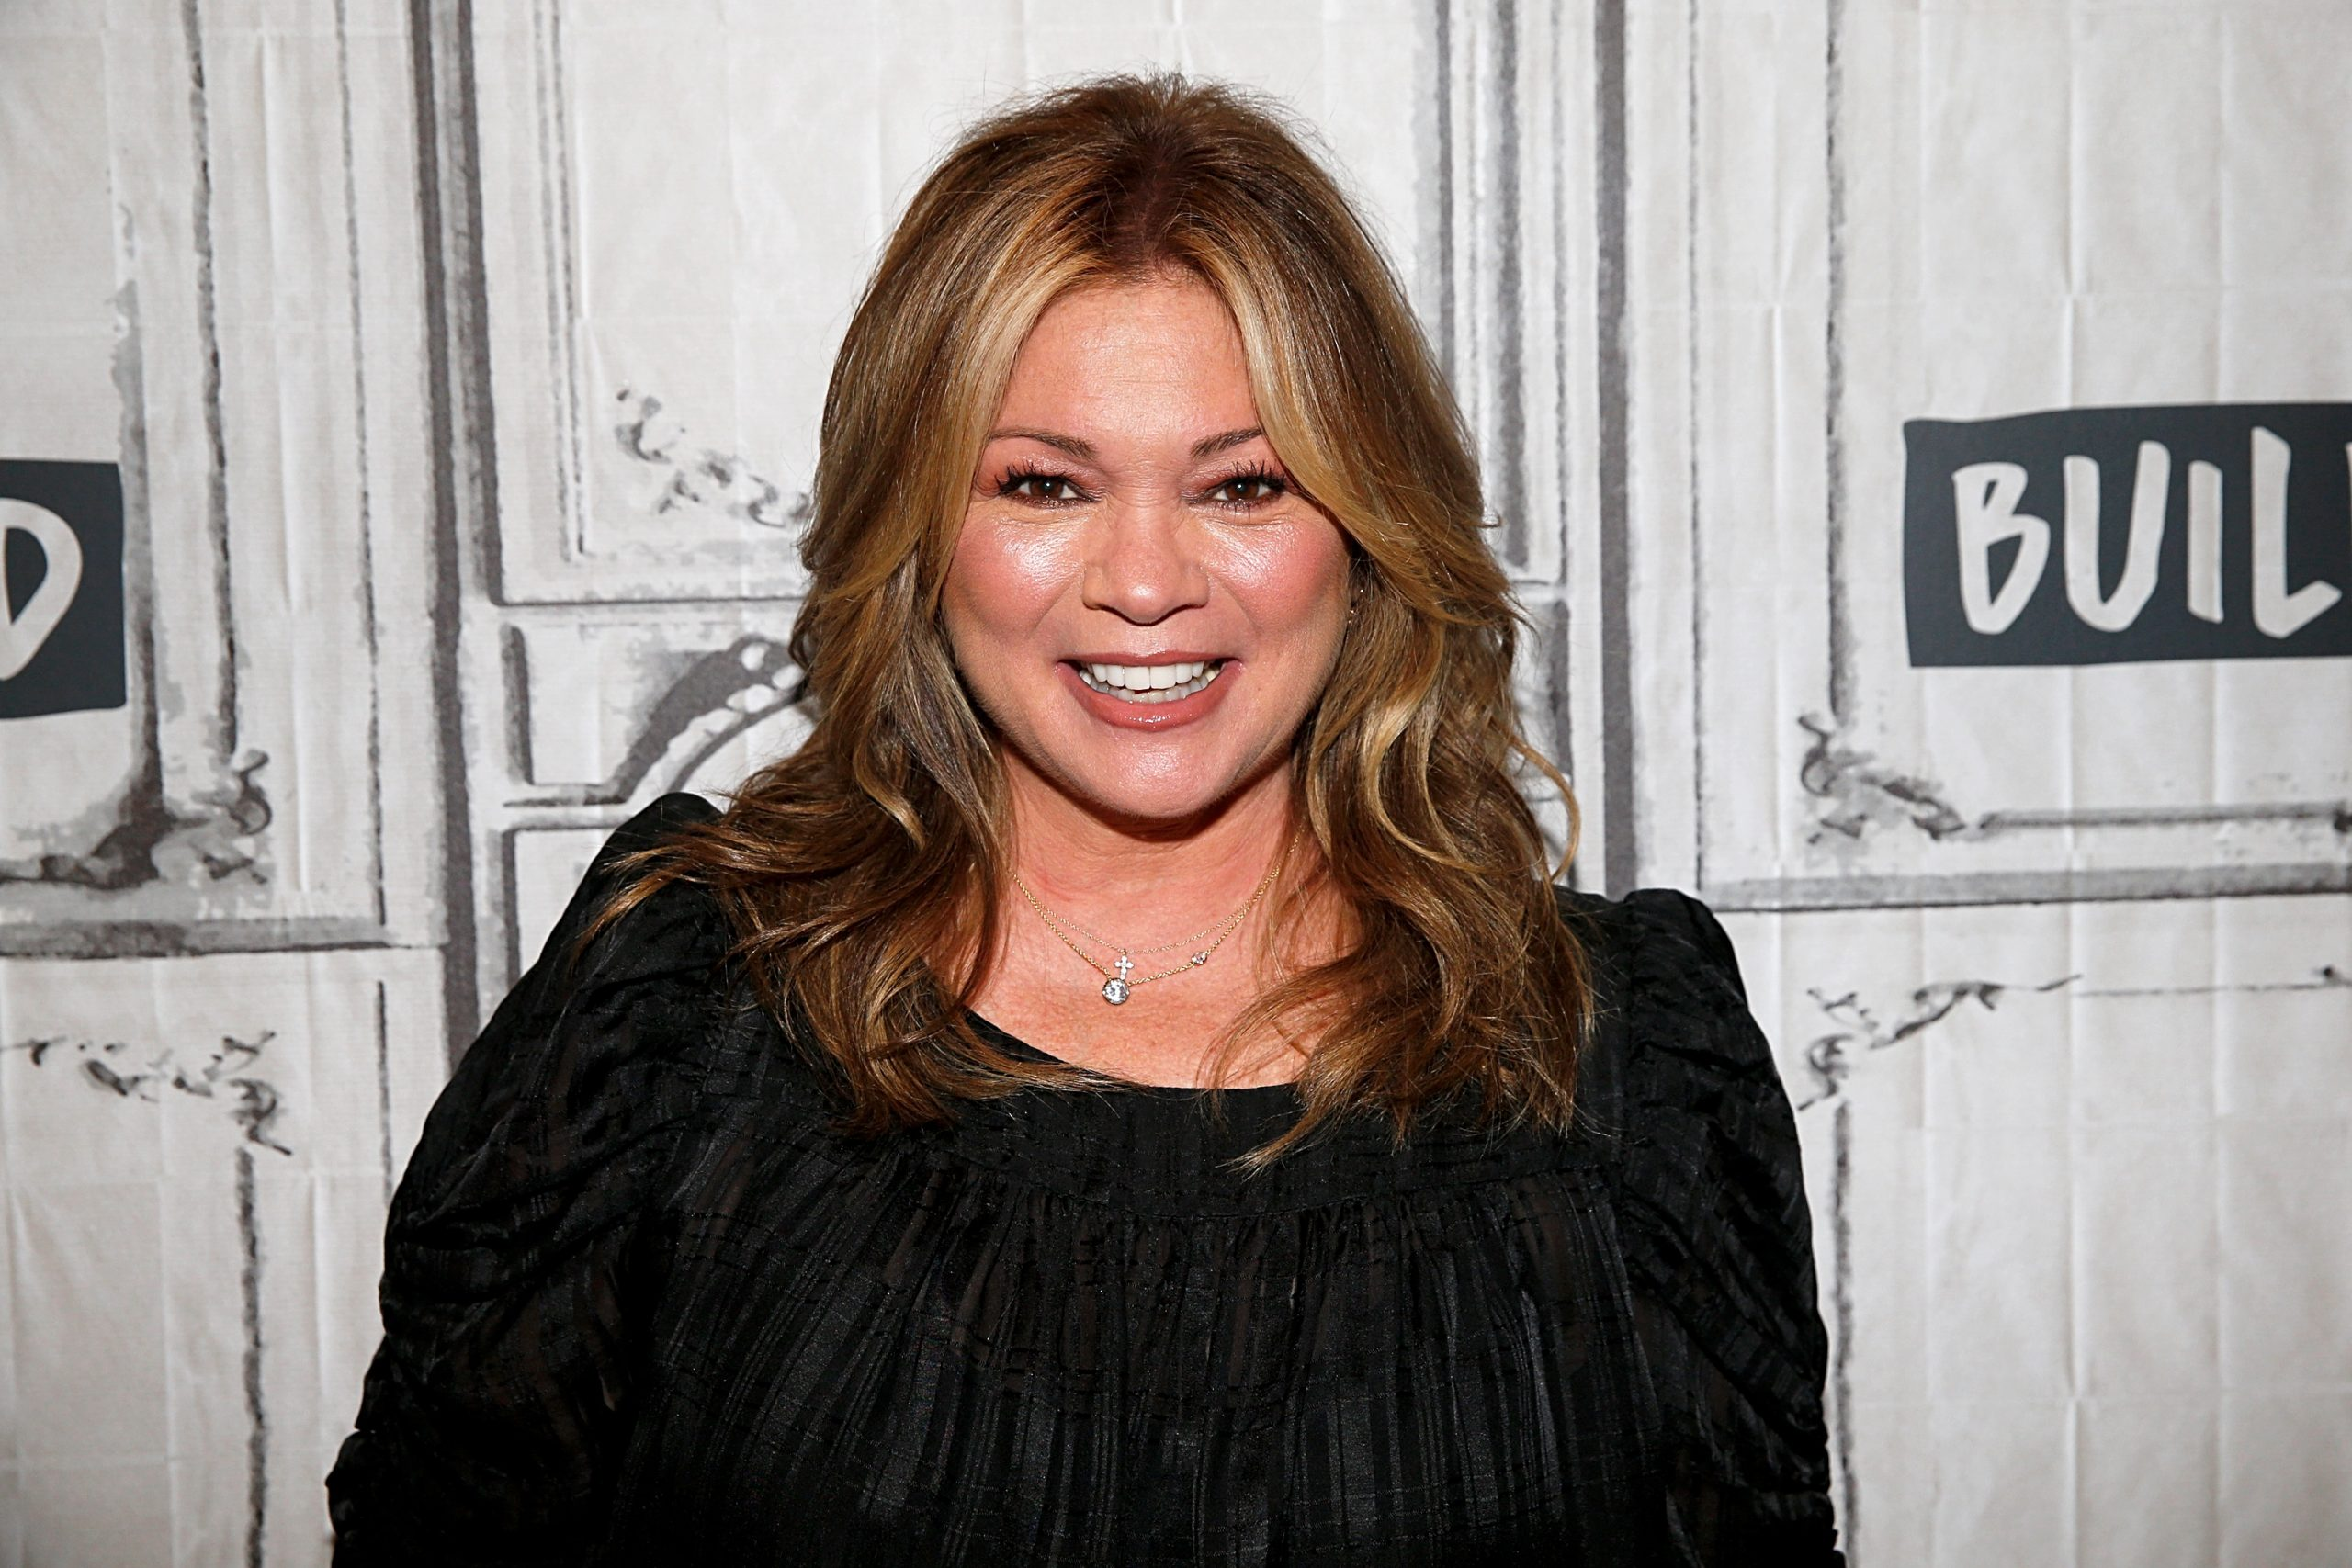 Food Network star Valerie Bertinelli is wearing a dark long-sleeved top and smiling for the camera.